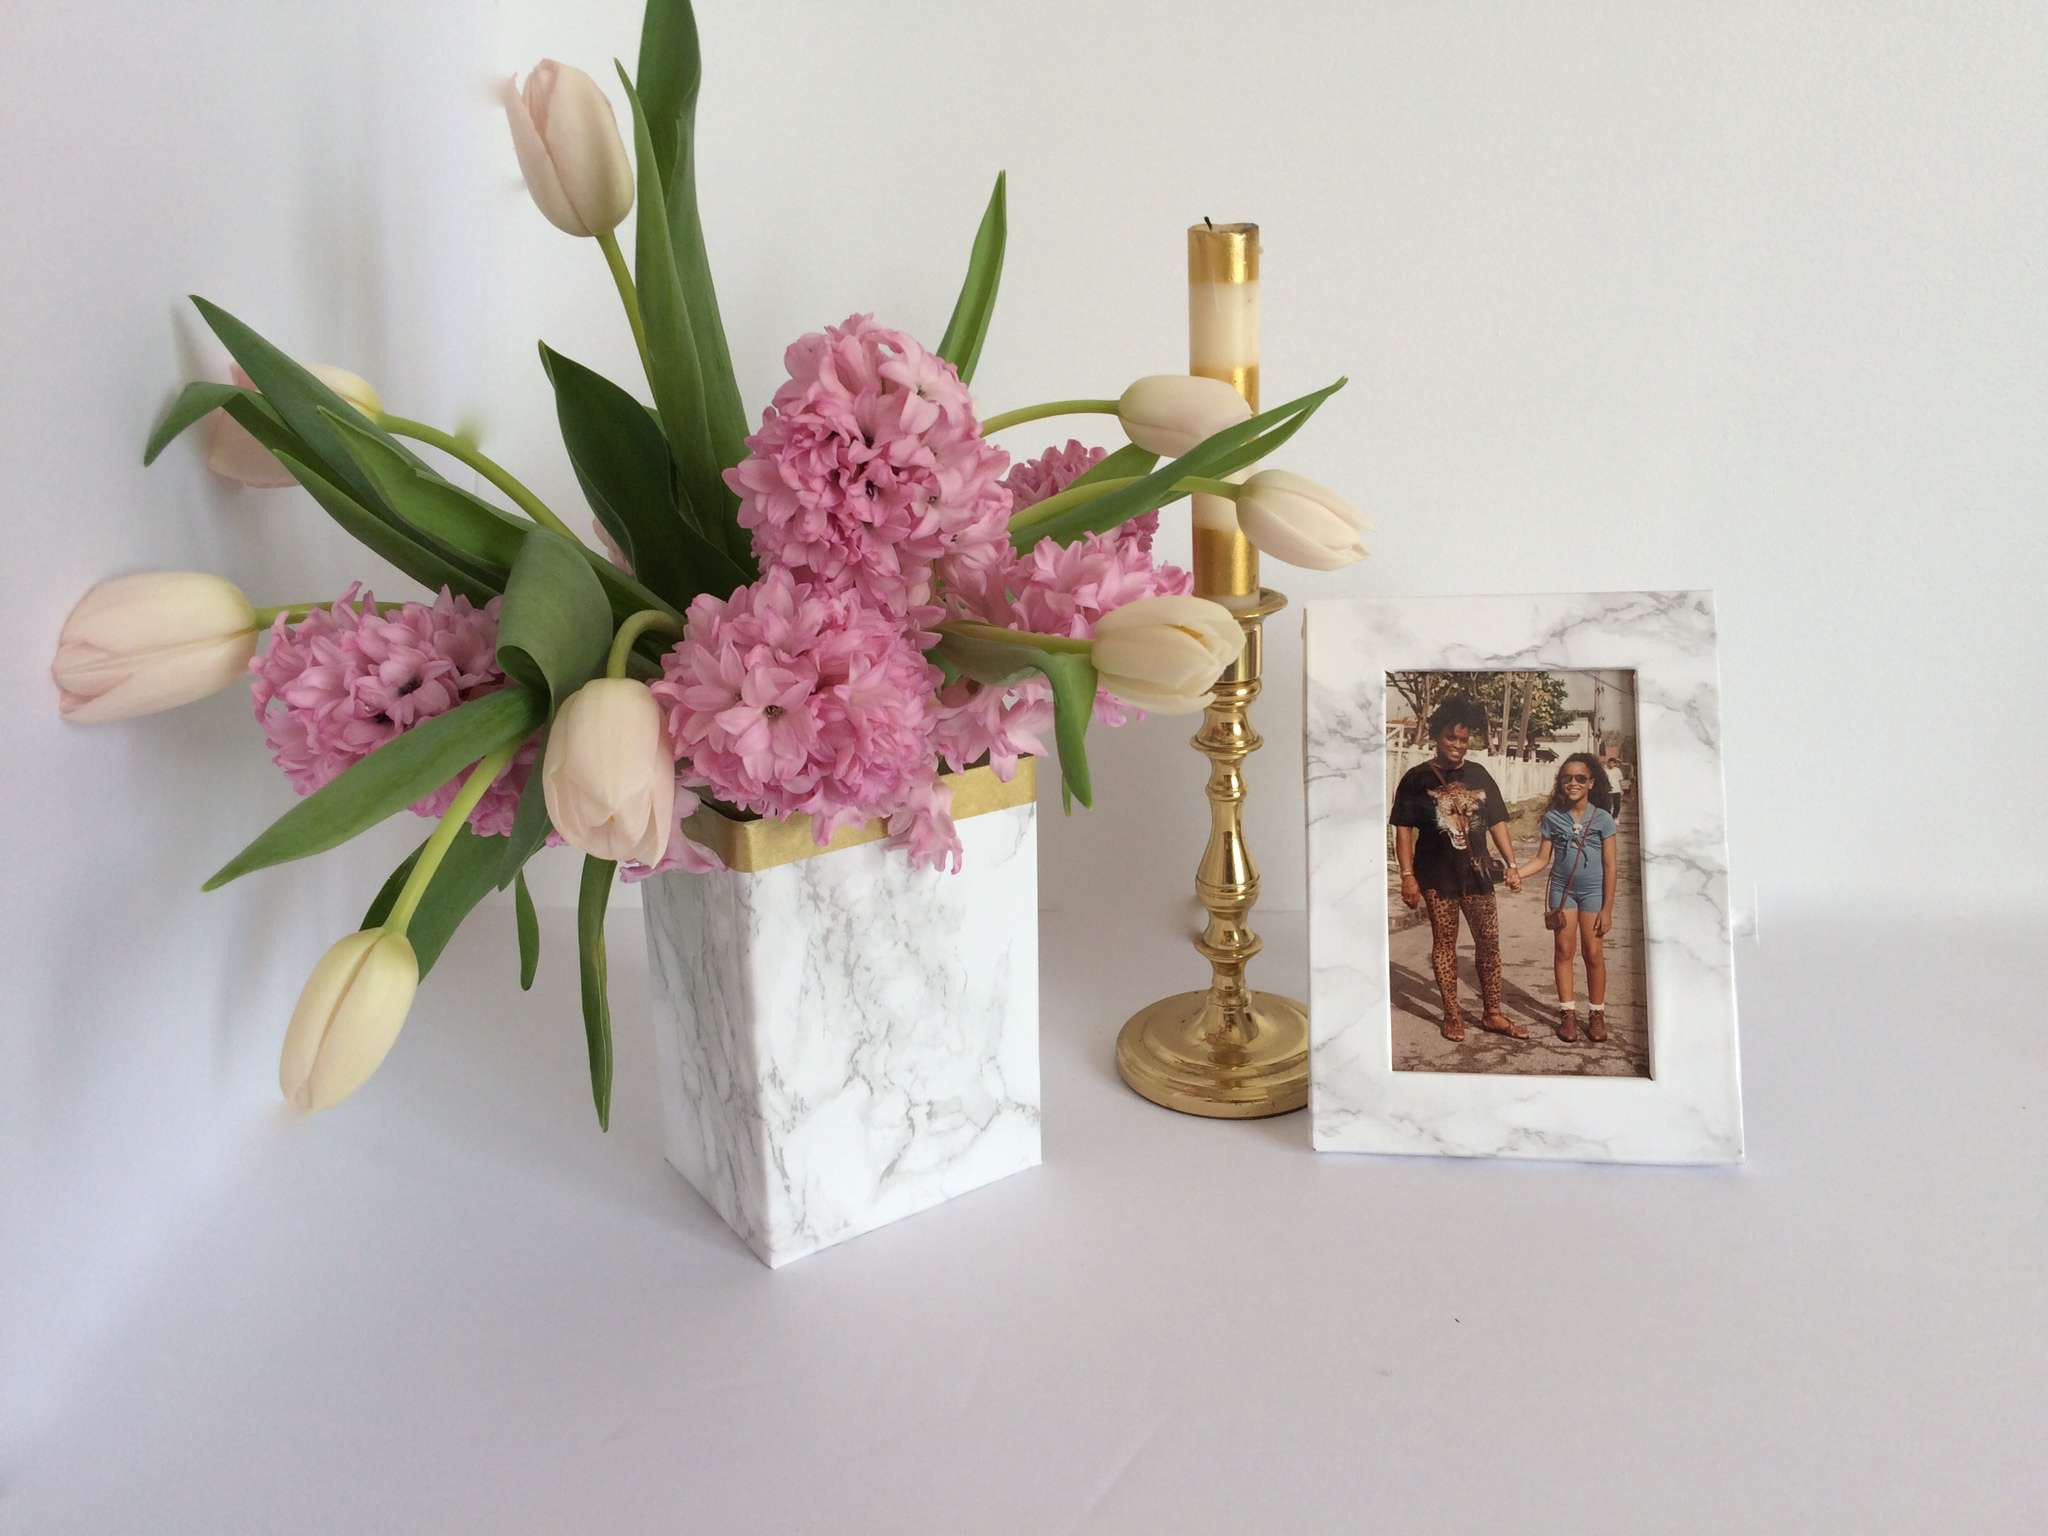 20 inch square vase of a gorgeous diy faux marble vase frame throughout 1 57164fbe3df78c3fa2afc31e jpg